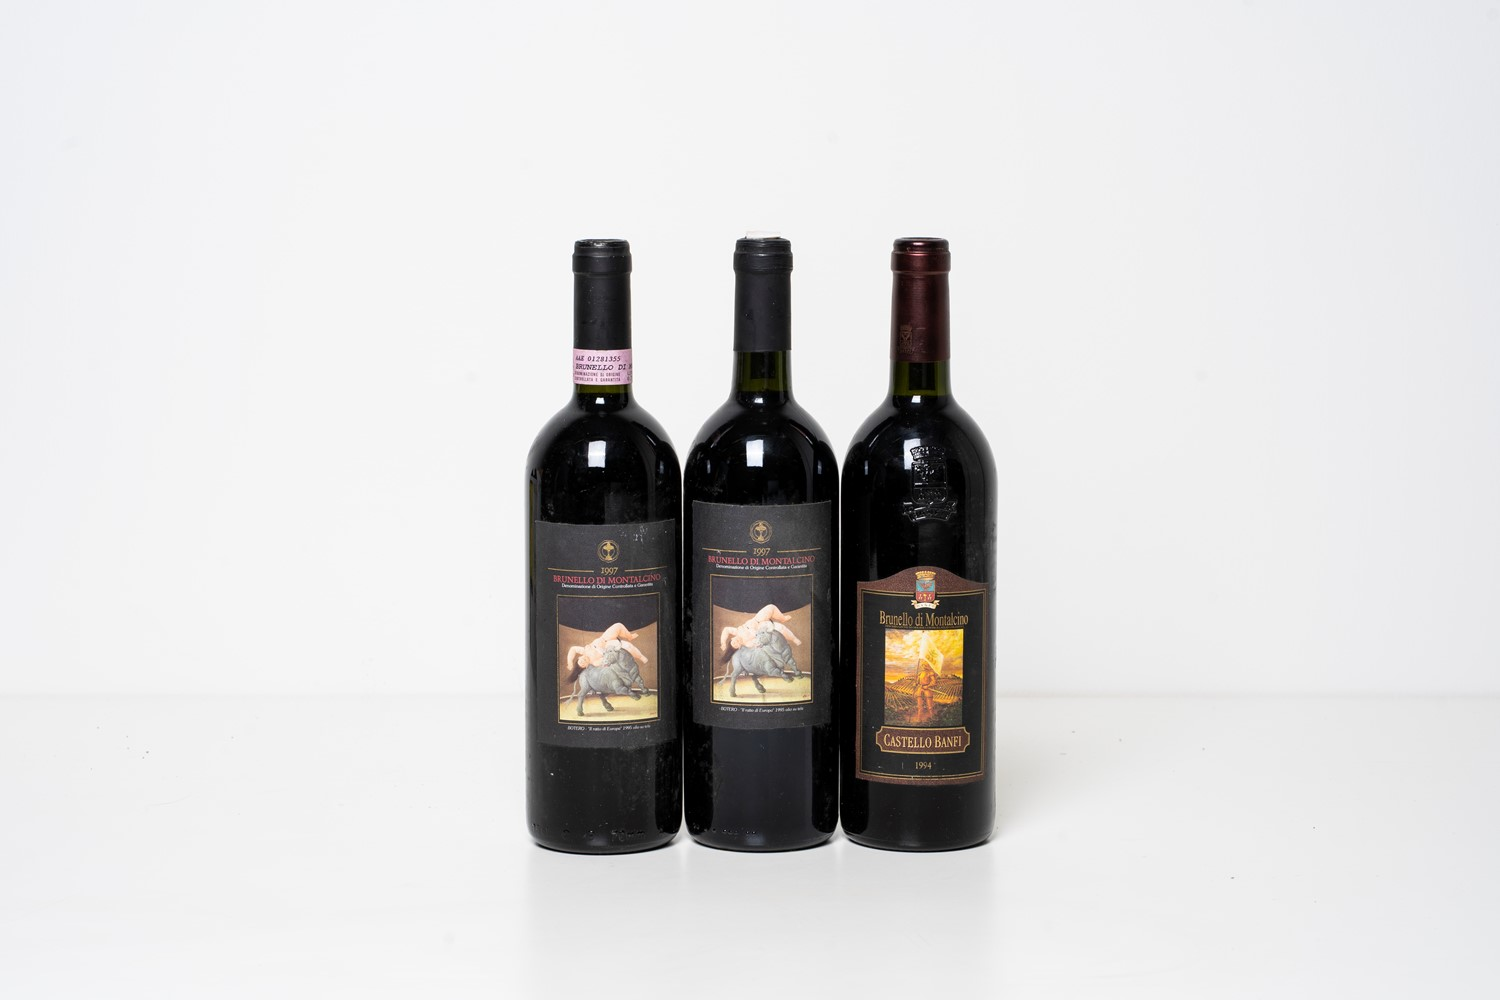 Brunello di Montalcino / Selection of Brunello di Montalcino - Toscana - Castello [...]